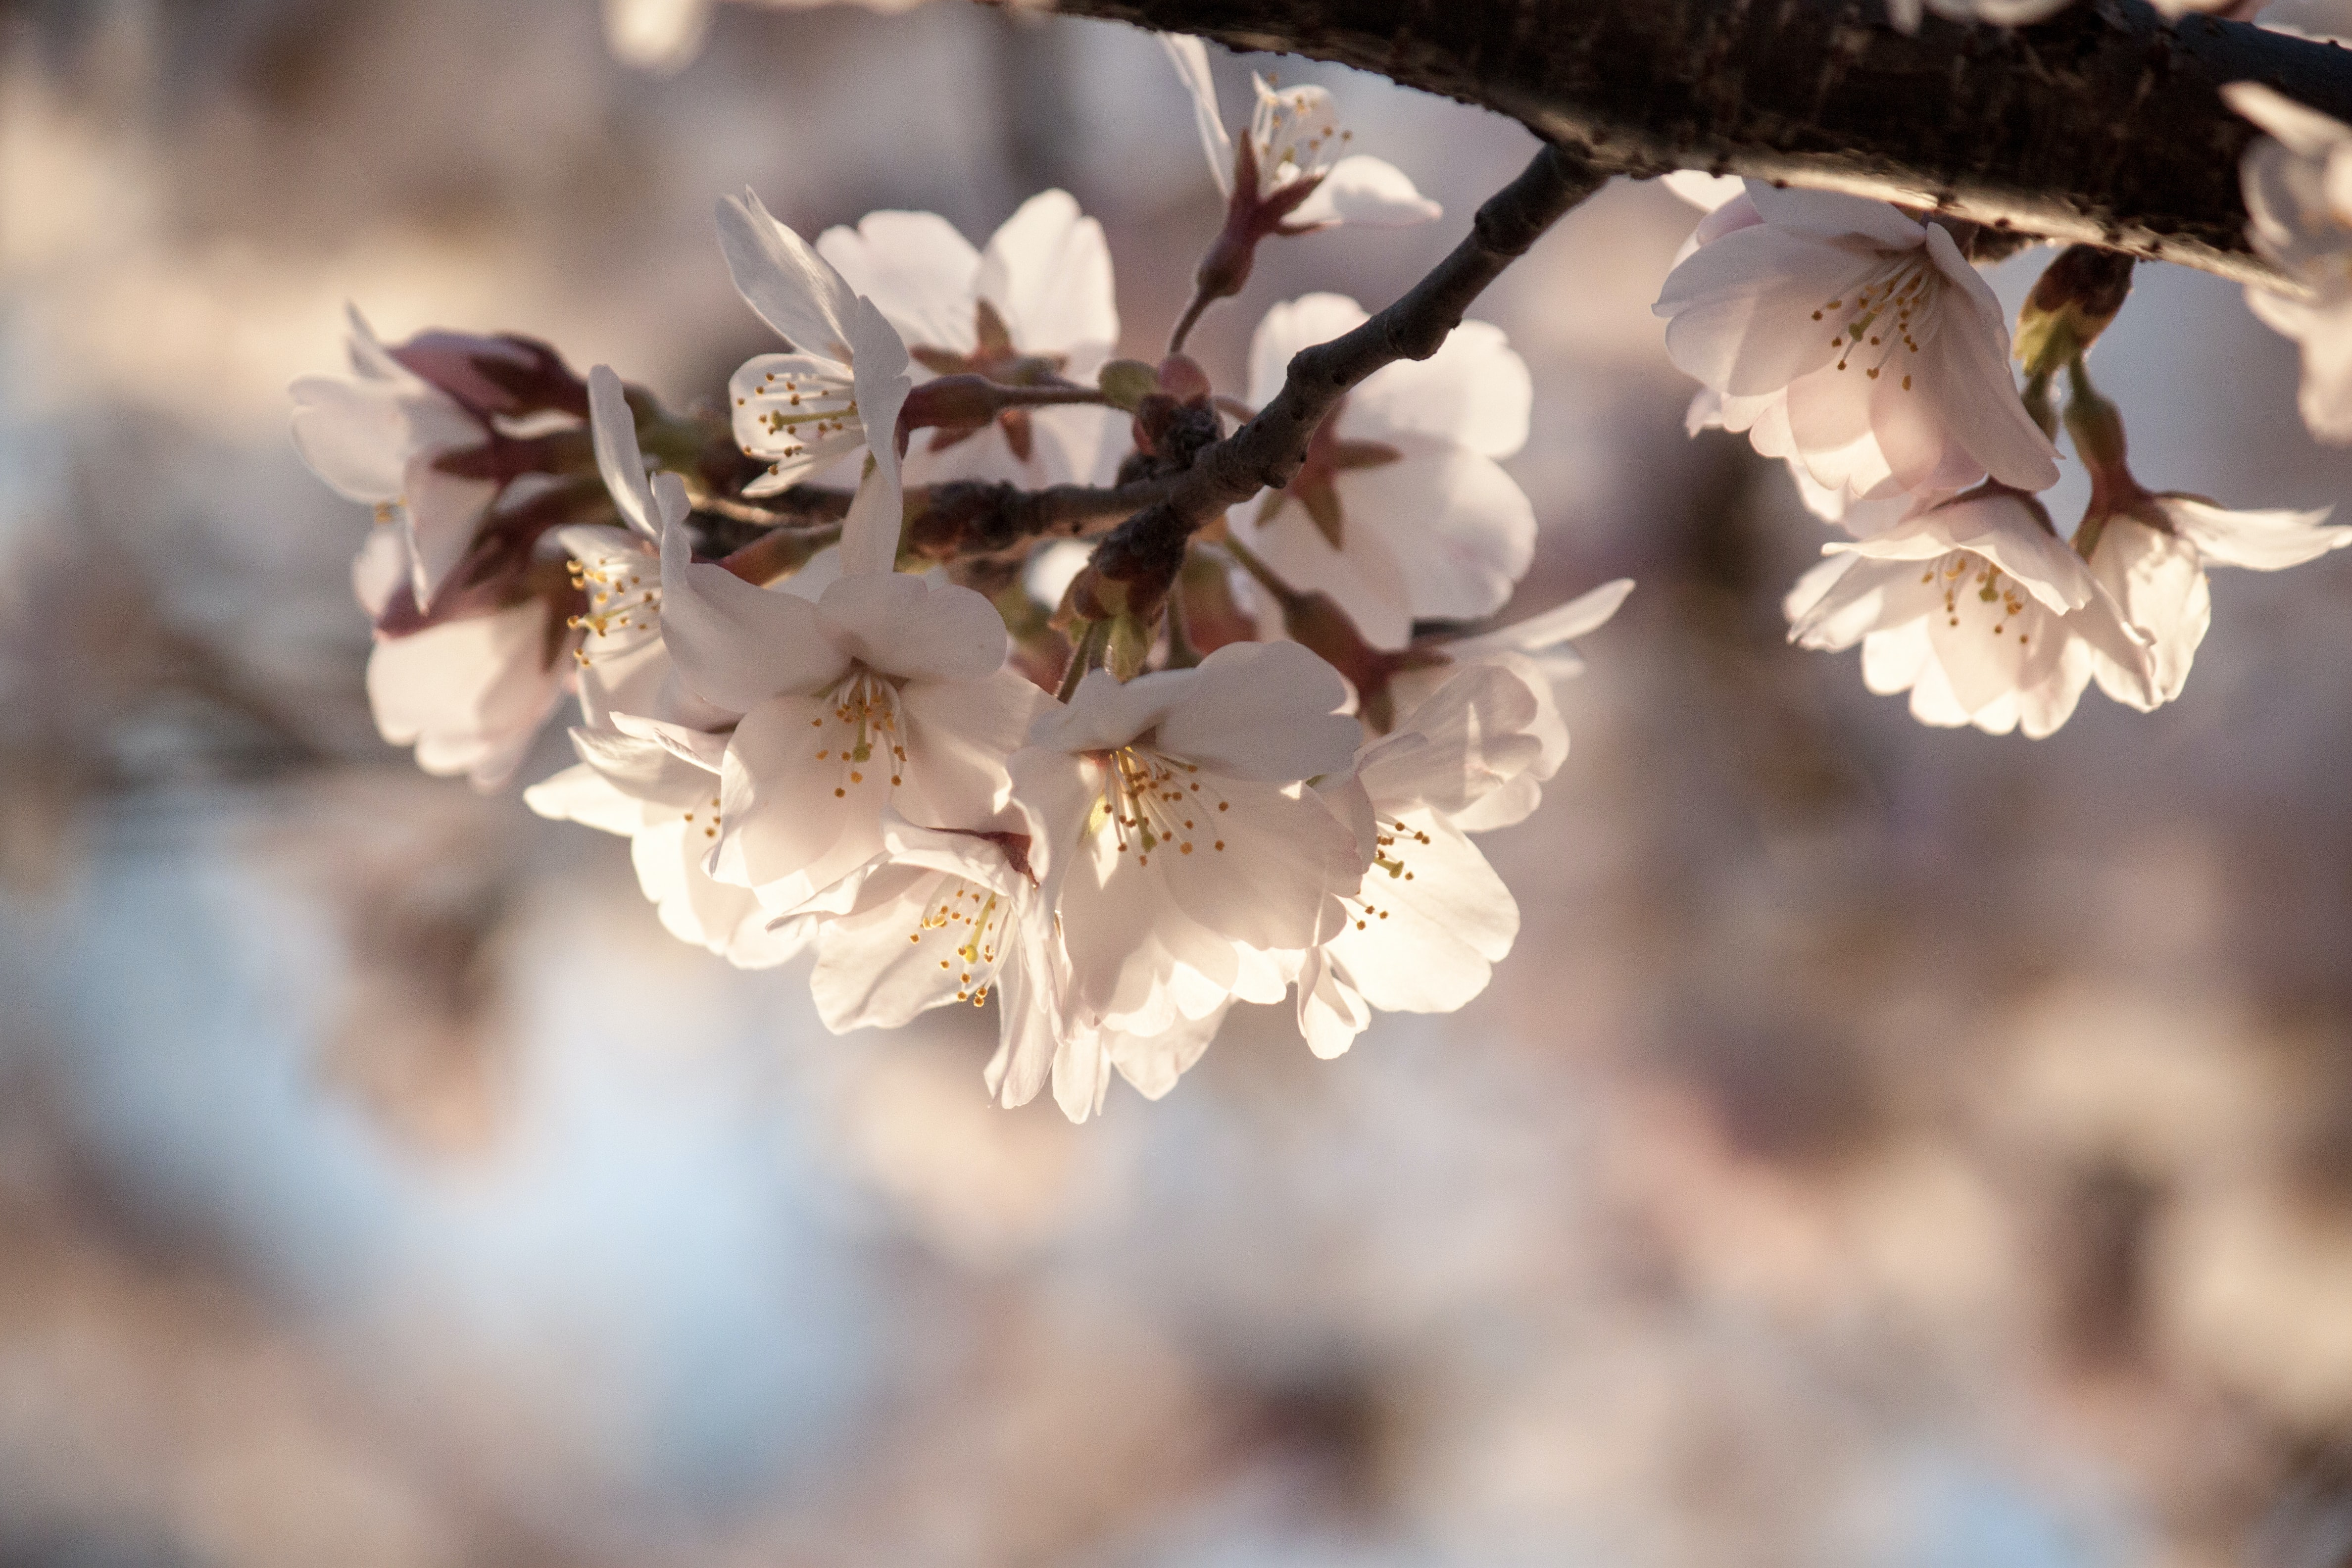 White blossom in clusters on a tree brunch